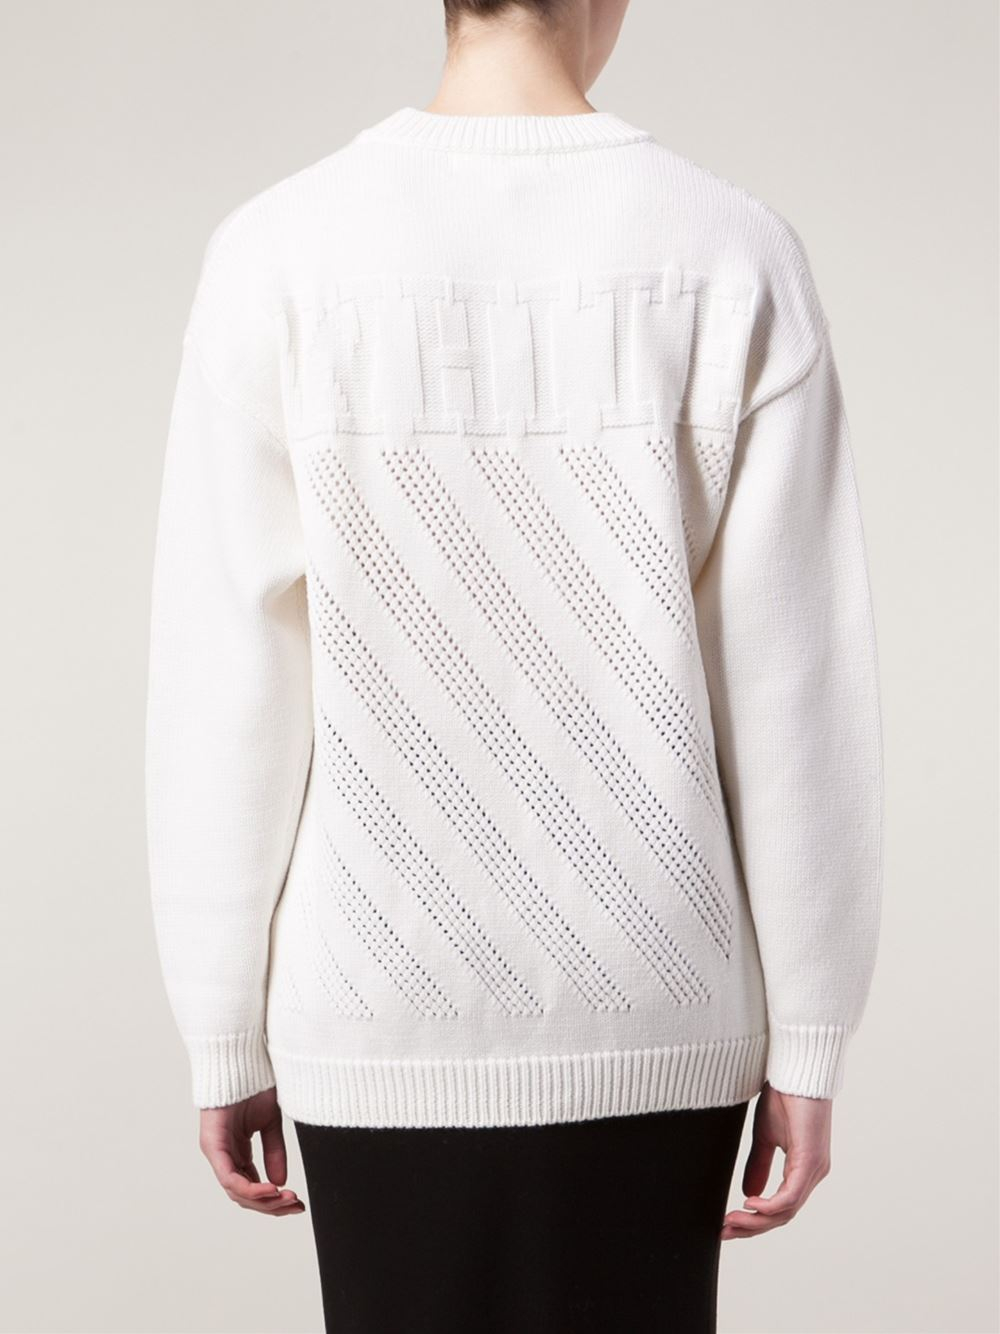 off white c o virgil abloh perforated sweater in white lyst. Black Bedroom Furniture Sets. Home Design Ideas